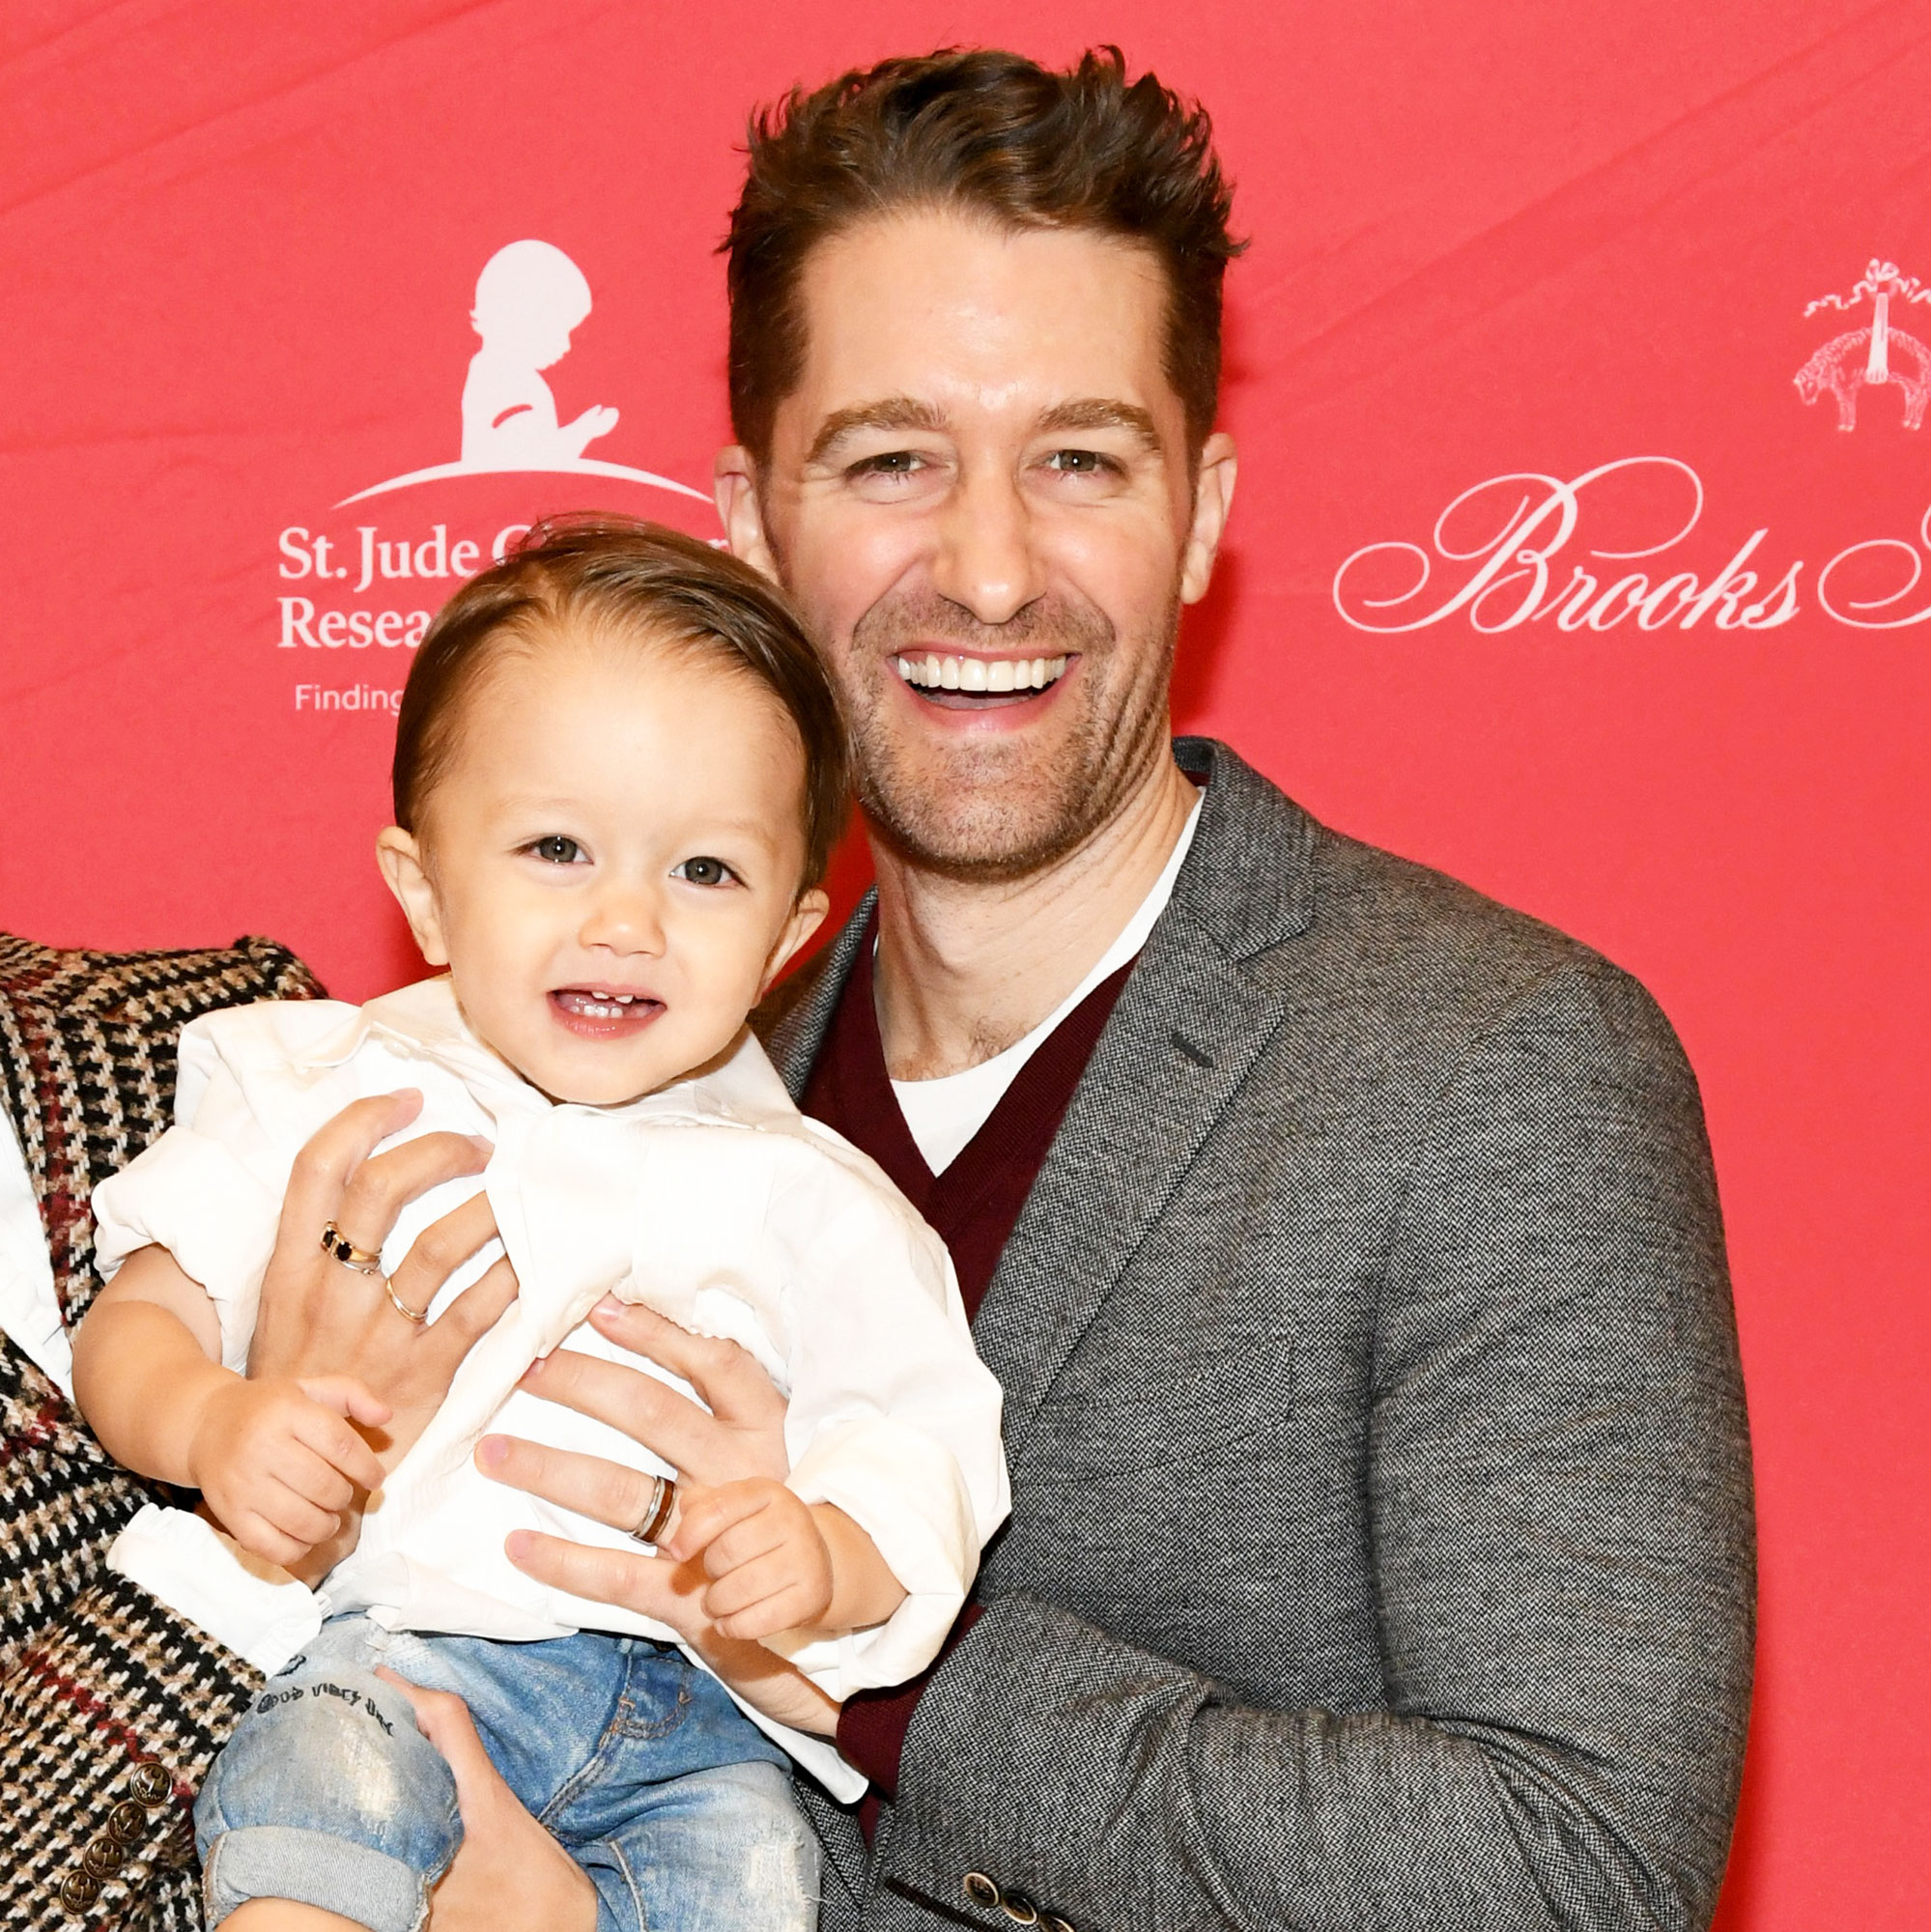 Matthew Morrison Reveals When He'll Let His Son Watch Him 'in His Prime' on 'Glee' - Renee Puente, Revel Morrison, and Matthew Morrison attend the Brooks Brothers And St Jude Children's Research Hospital Annual Holiday Celebration In New York City on December 18, 2018 in New York City.